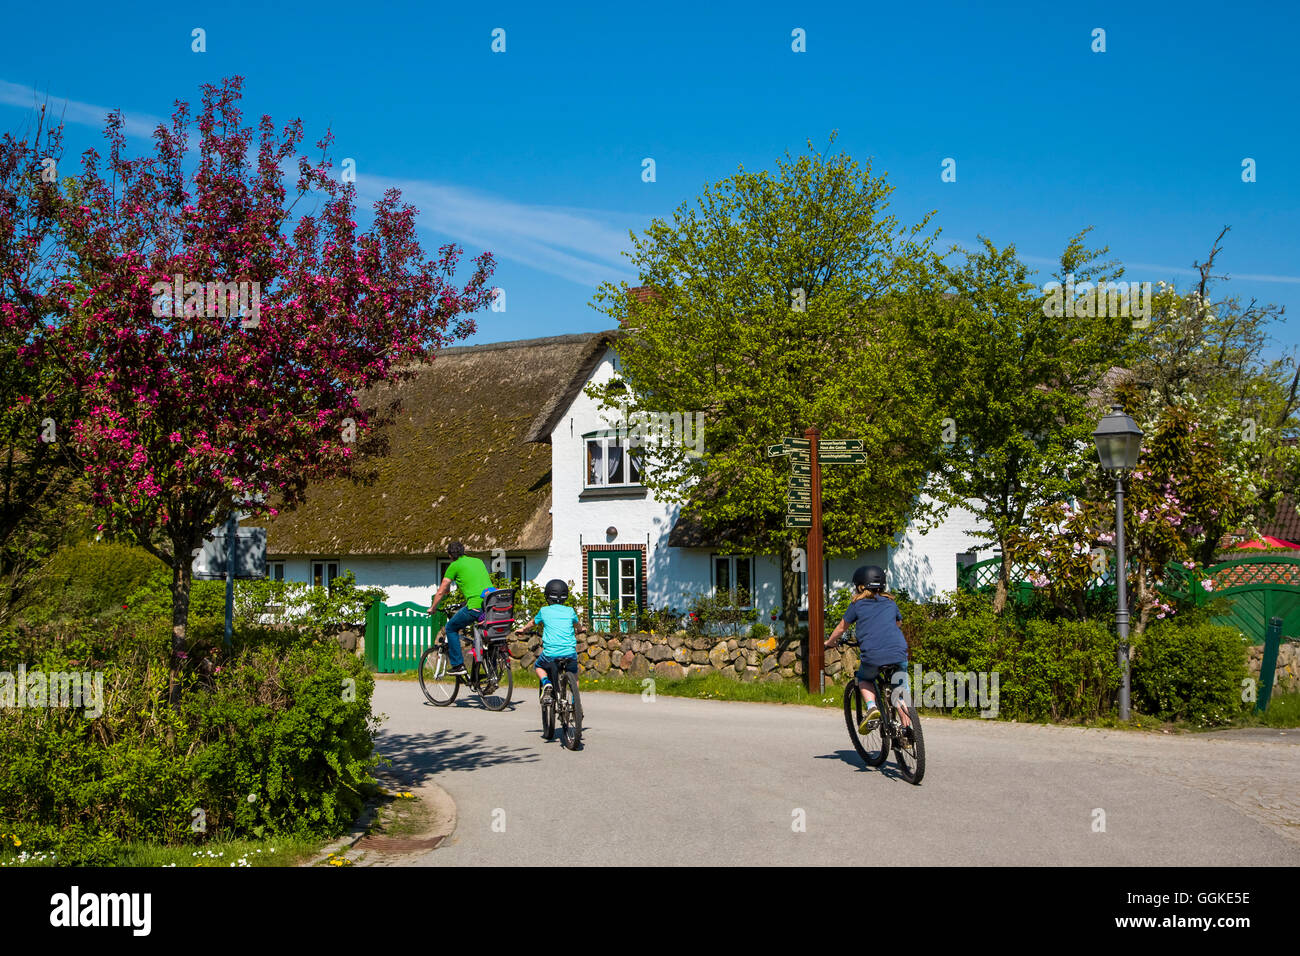 Cyclists infront of a thatched house in Nebel, Amrum Island, North Frisian Islands, Schleswig-Holstein, Germany - Stock Image